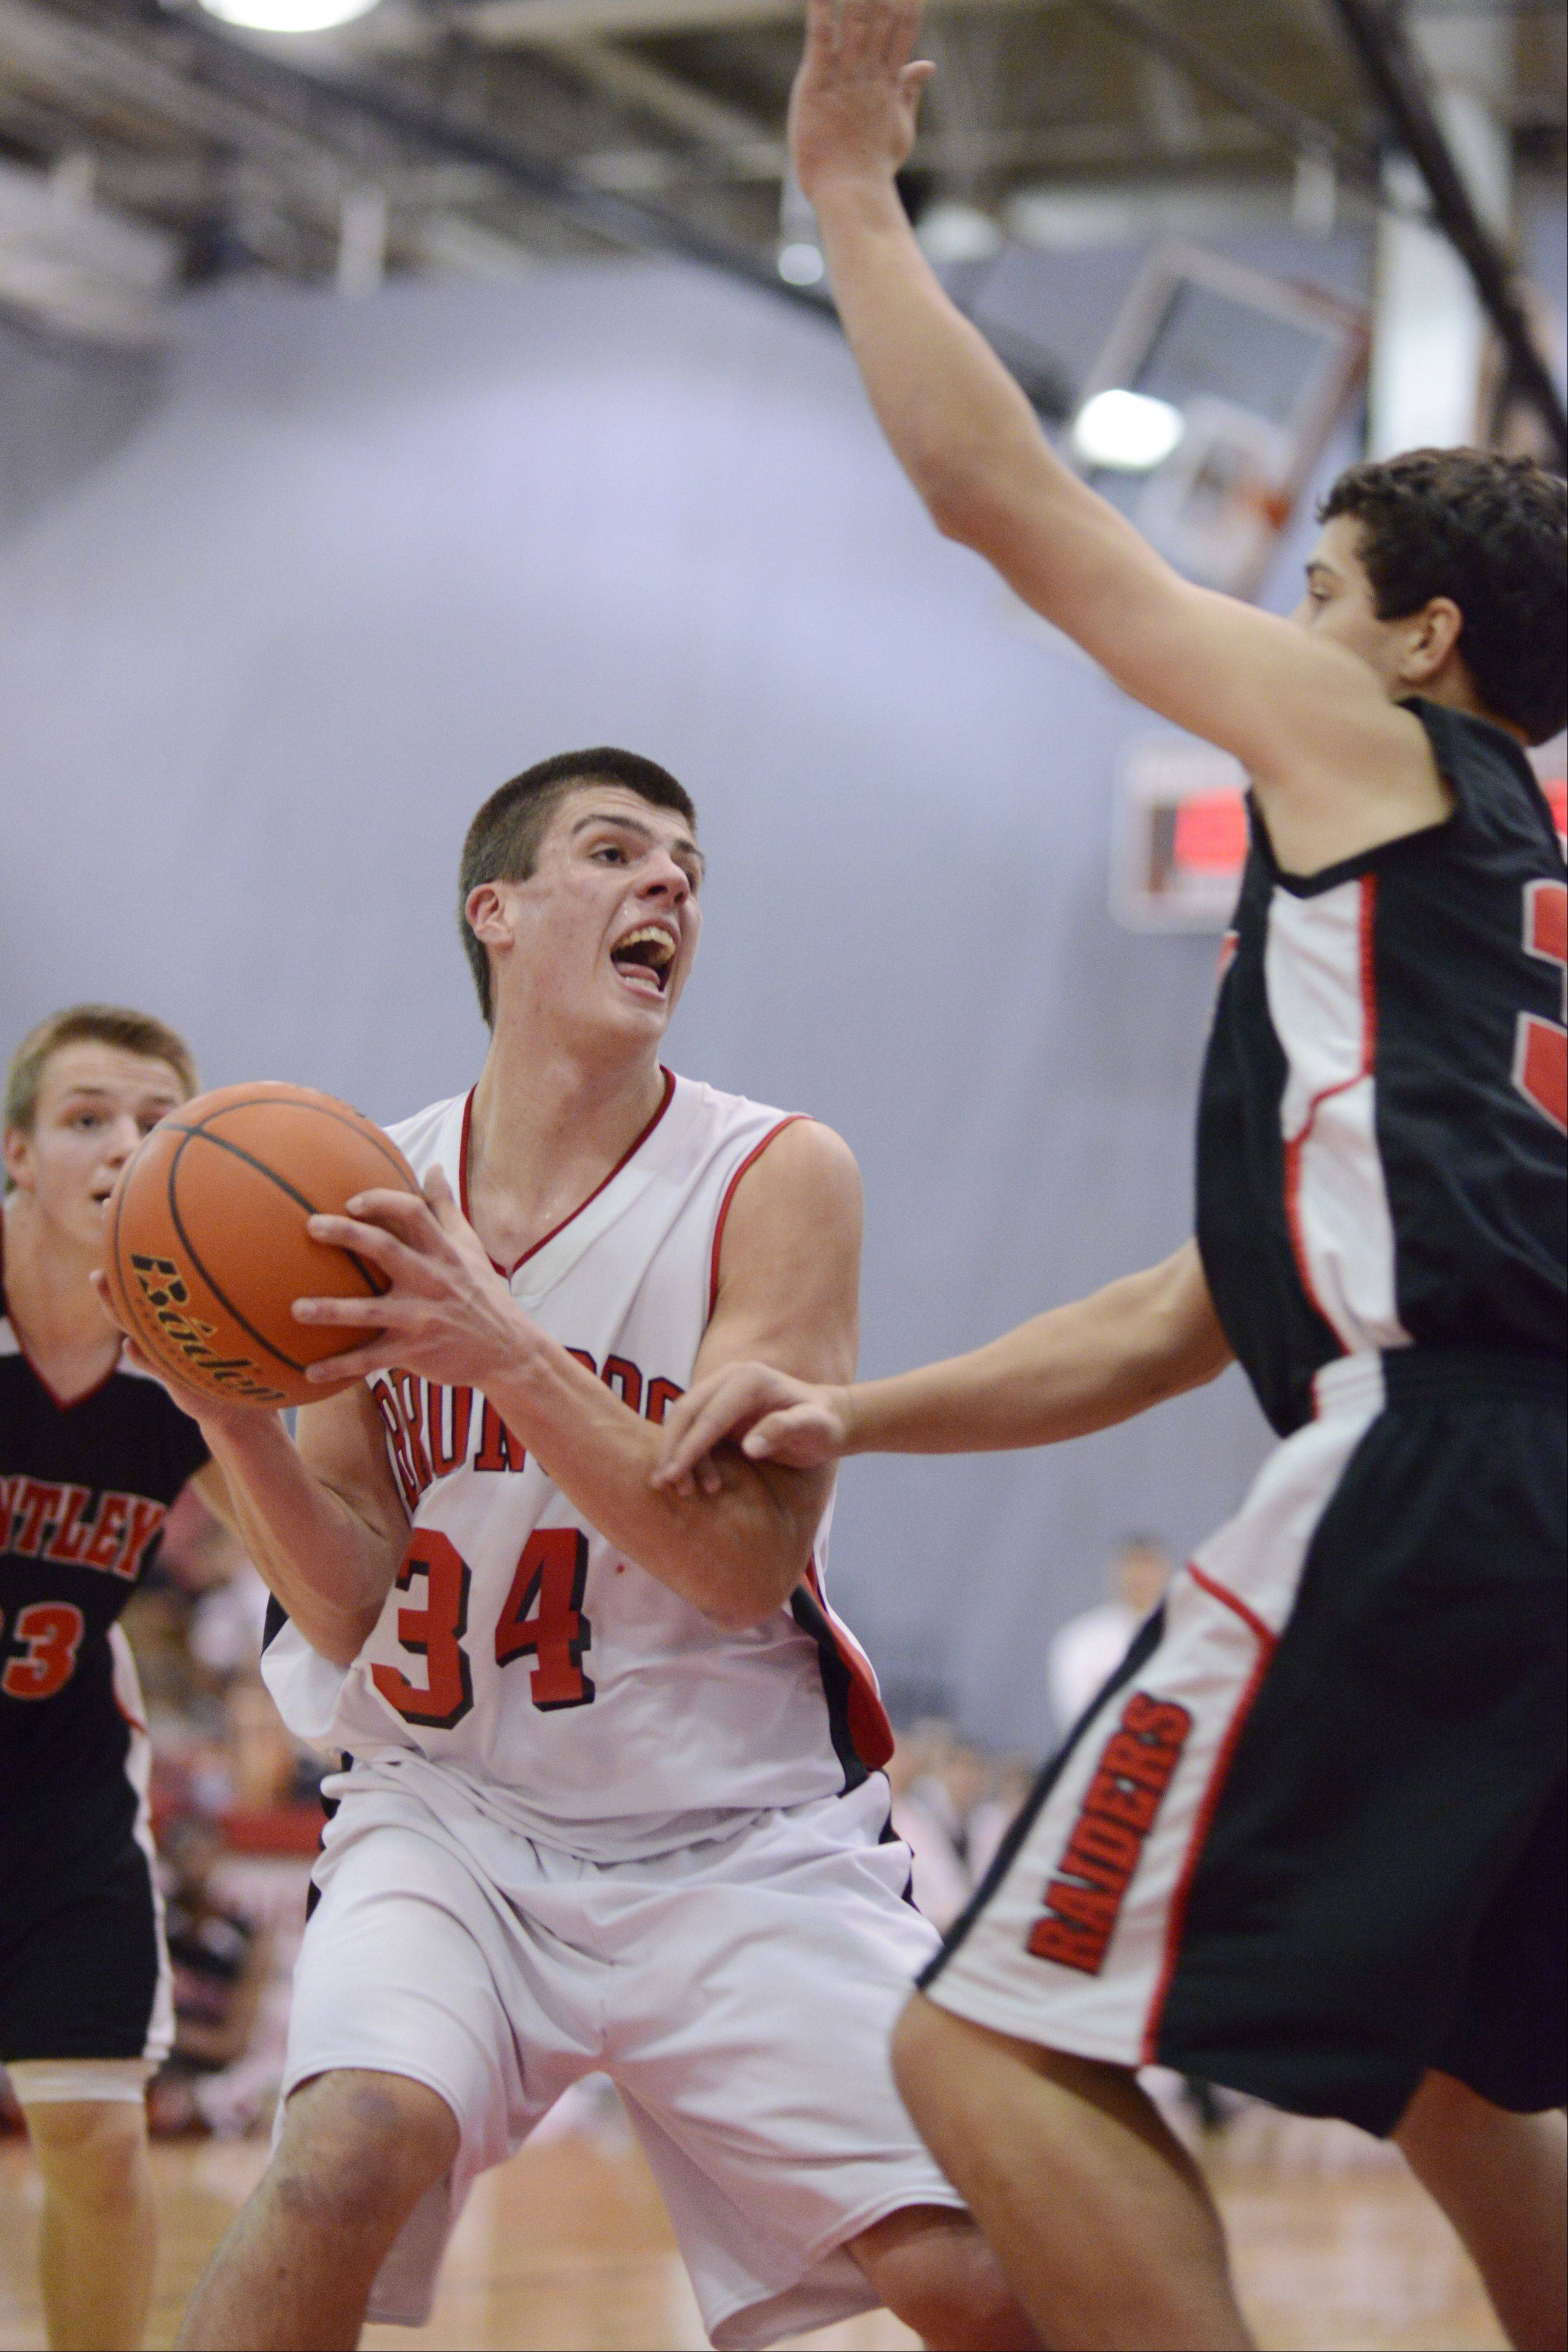 Barrington's Zach Bart makes a strong move to the basket against Huntley's Riley Wicks.